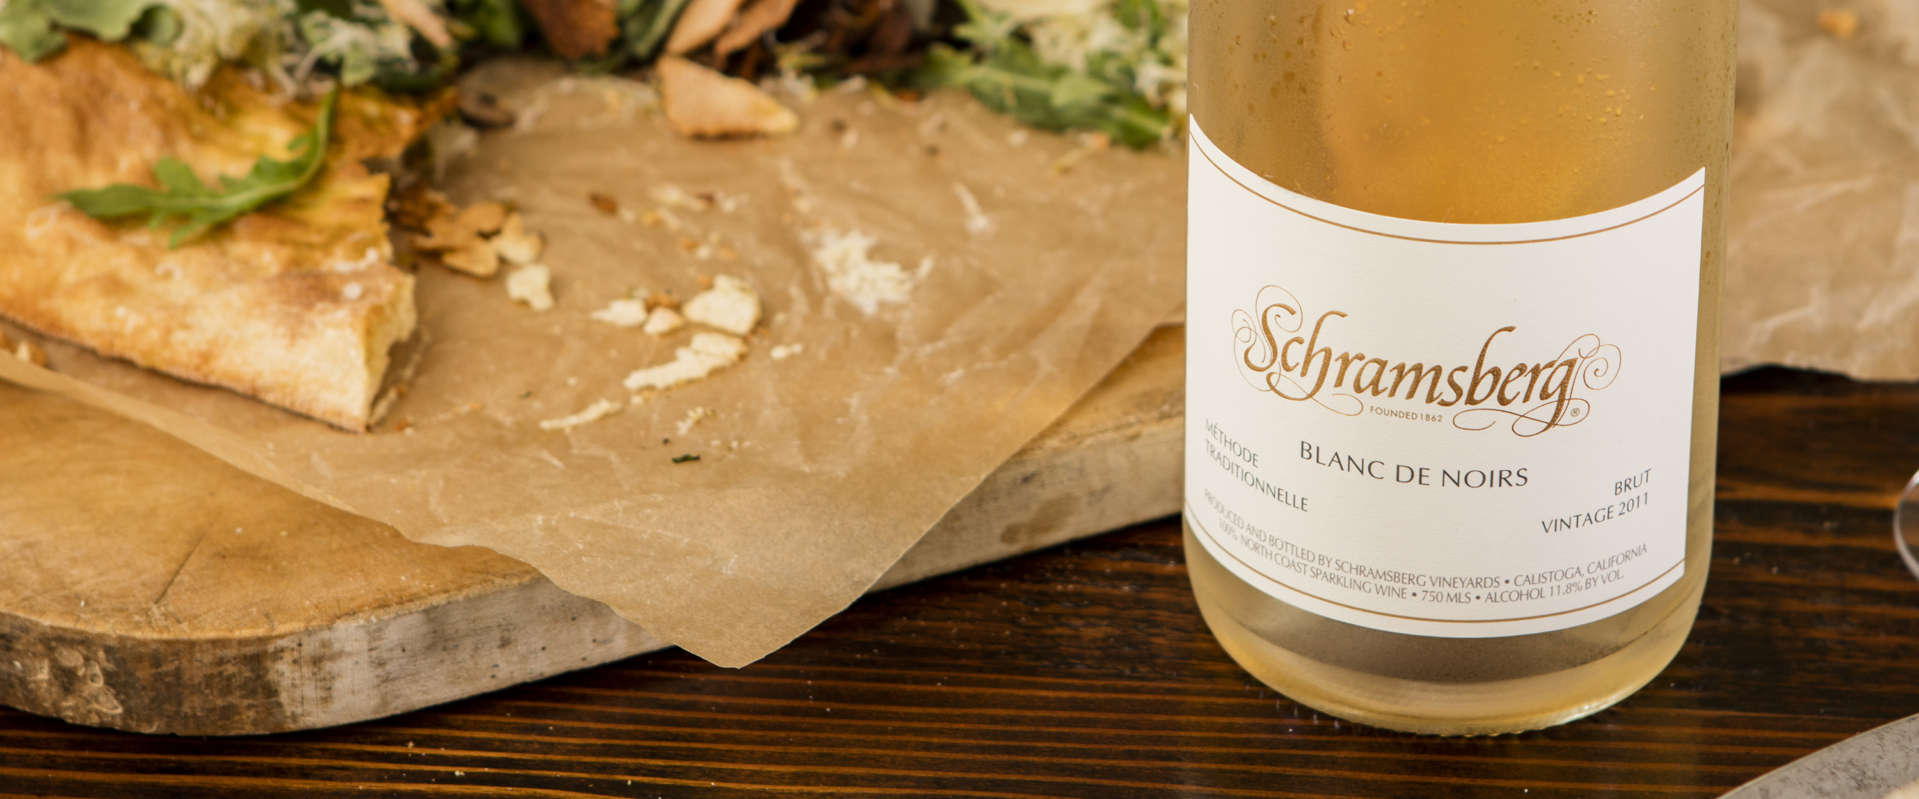 Schramsberg Blanc de Noirs sparkling wine paired with arugula and Parmesan flatbread